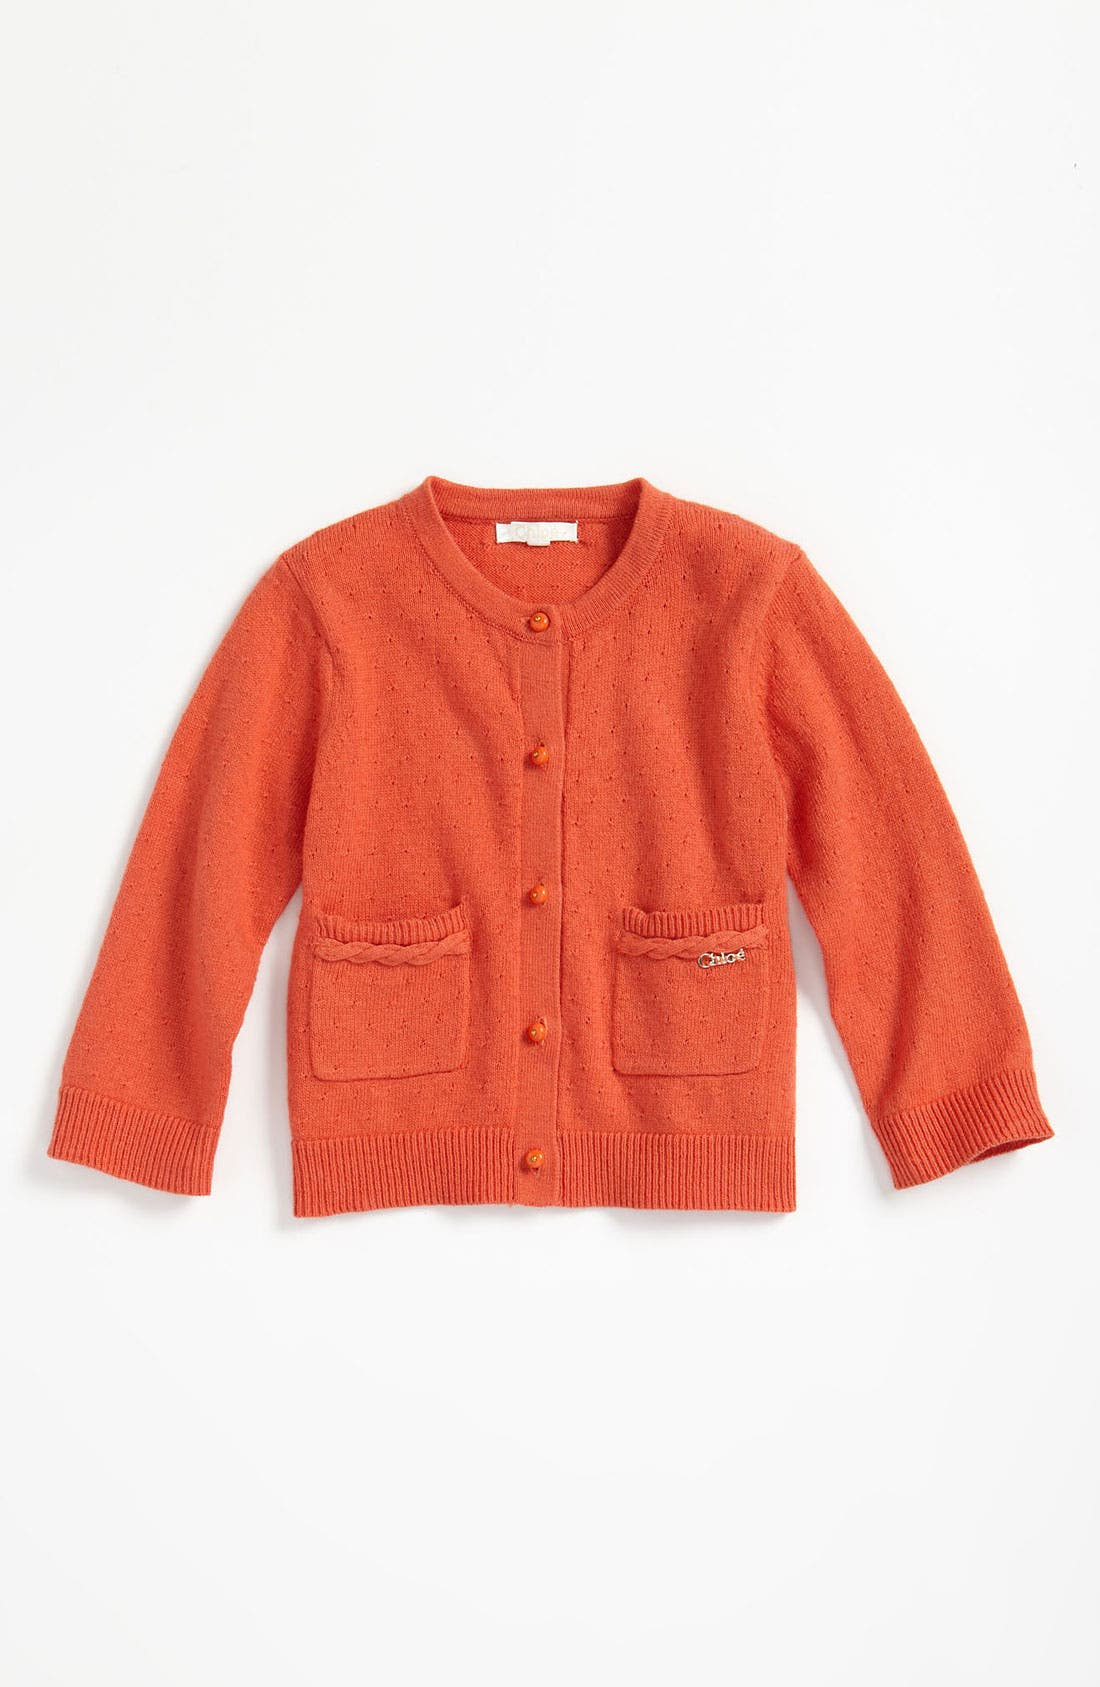 Alternate Image 1 Selected - Chloé Pointelle Cardigan (Toddler)